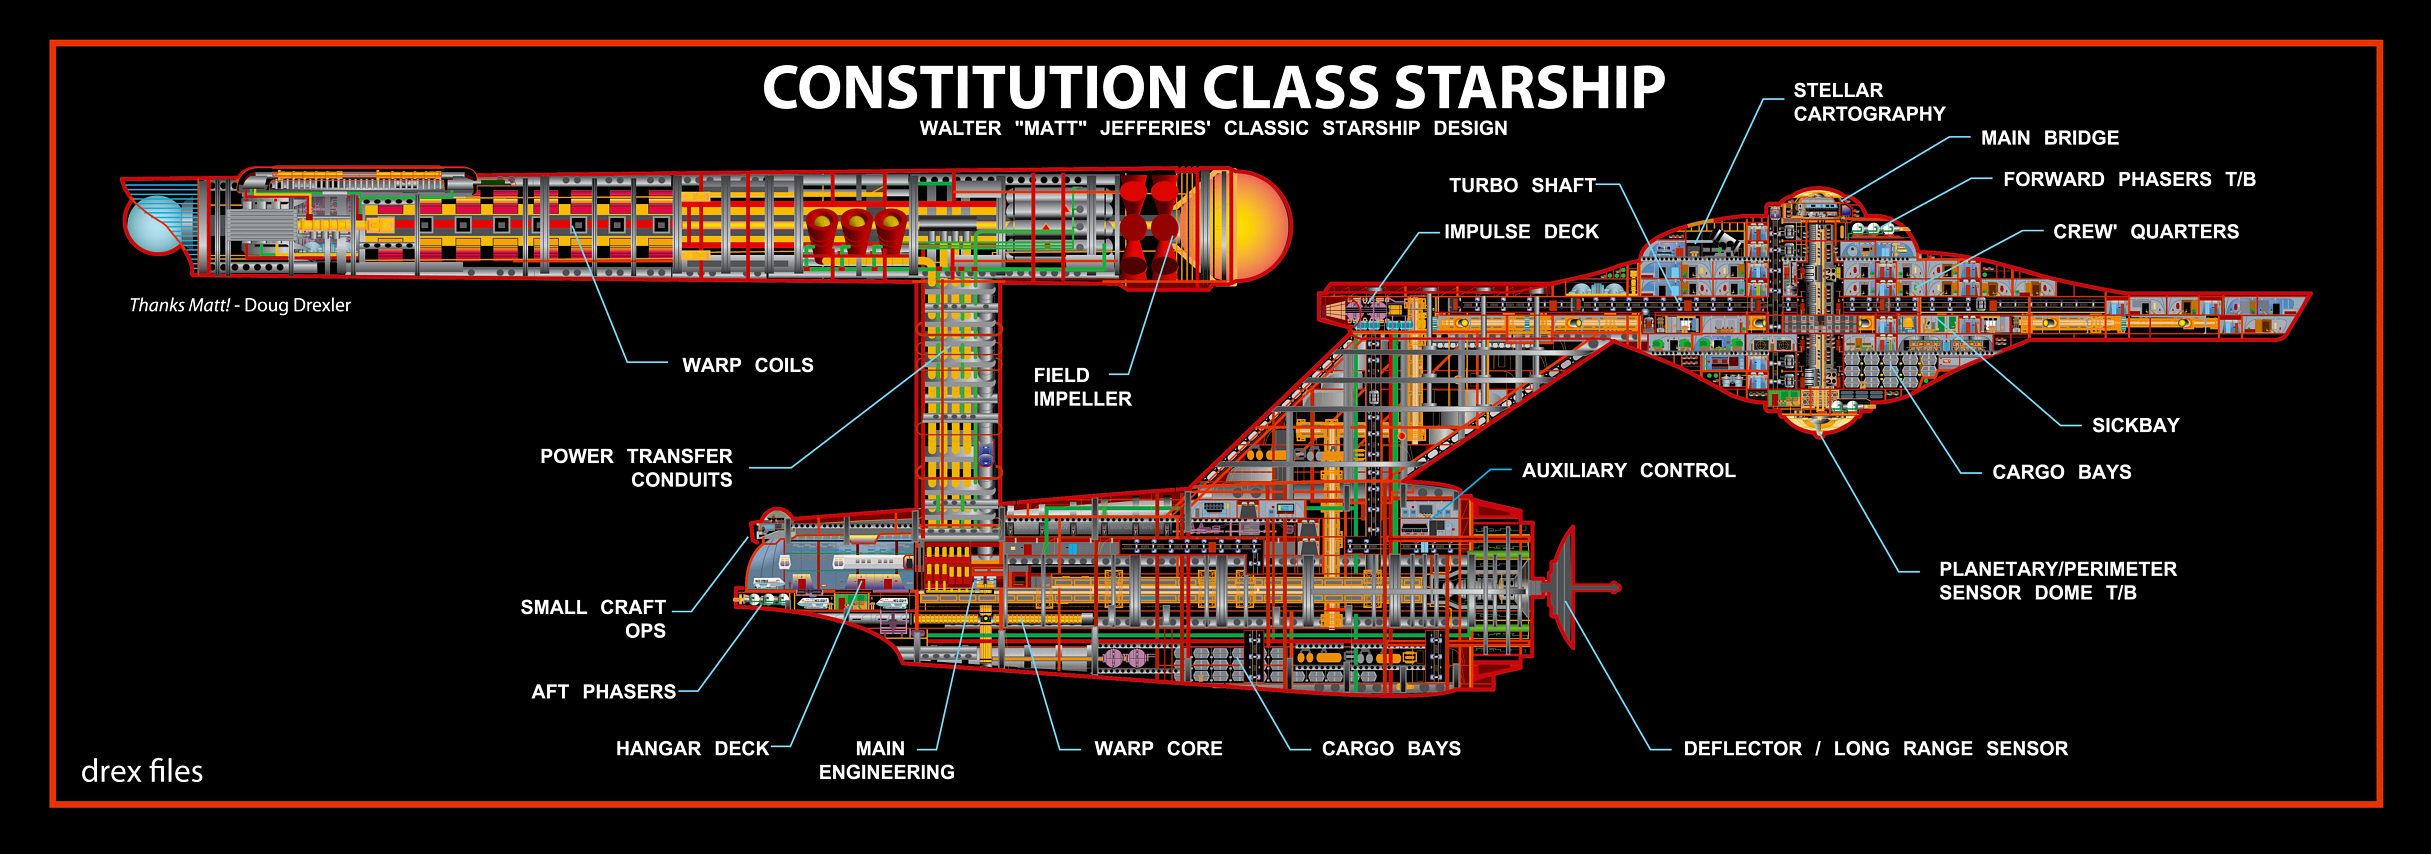 Star Trek: Constitution Class Cutaway By Twinky Twinky Stars.deviantart.com  On @deviantART